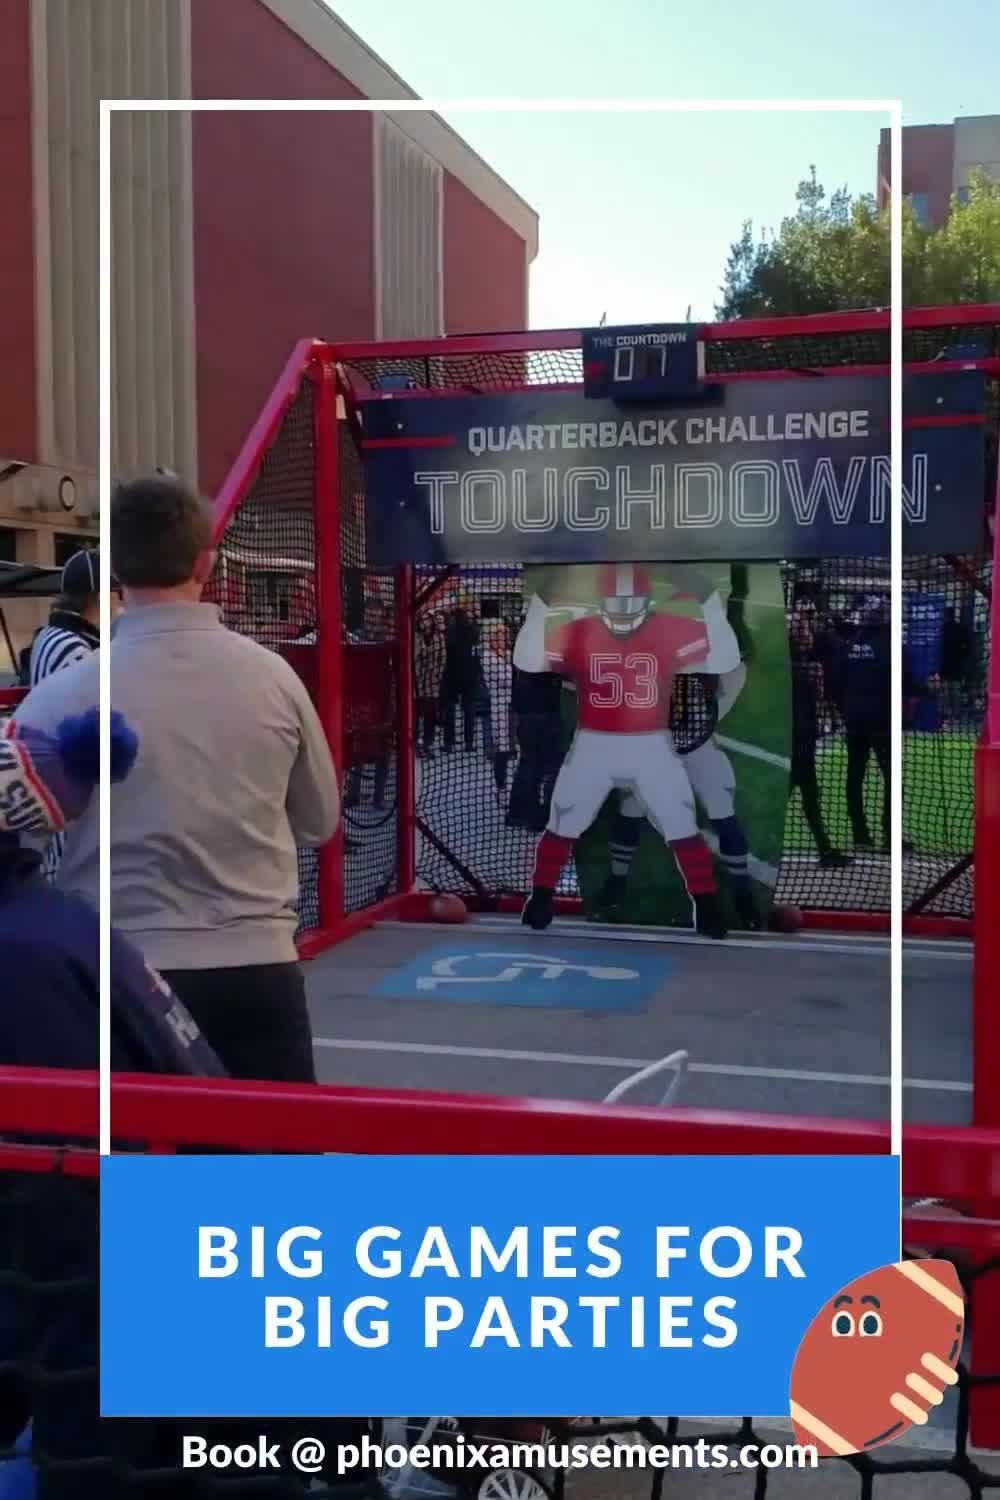 Big Games for Big Parties - How many footballs can you make in less than 20 seconds?  Awesome outdoor game that can also be brought indoors too! #partyplanners #eventideas #funactivities #fungames #eventinspiration #corporateevents #eventservices #eventprofs #eventplanning #eventplanner #PhoenixAmusements